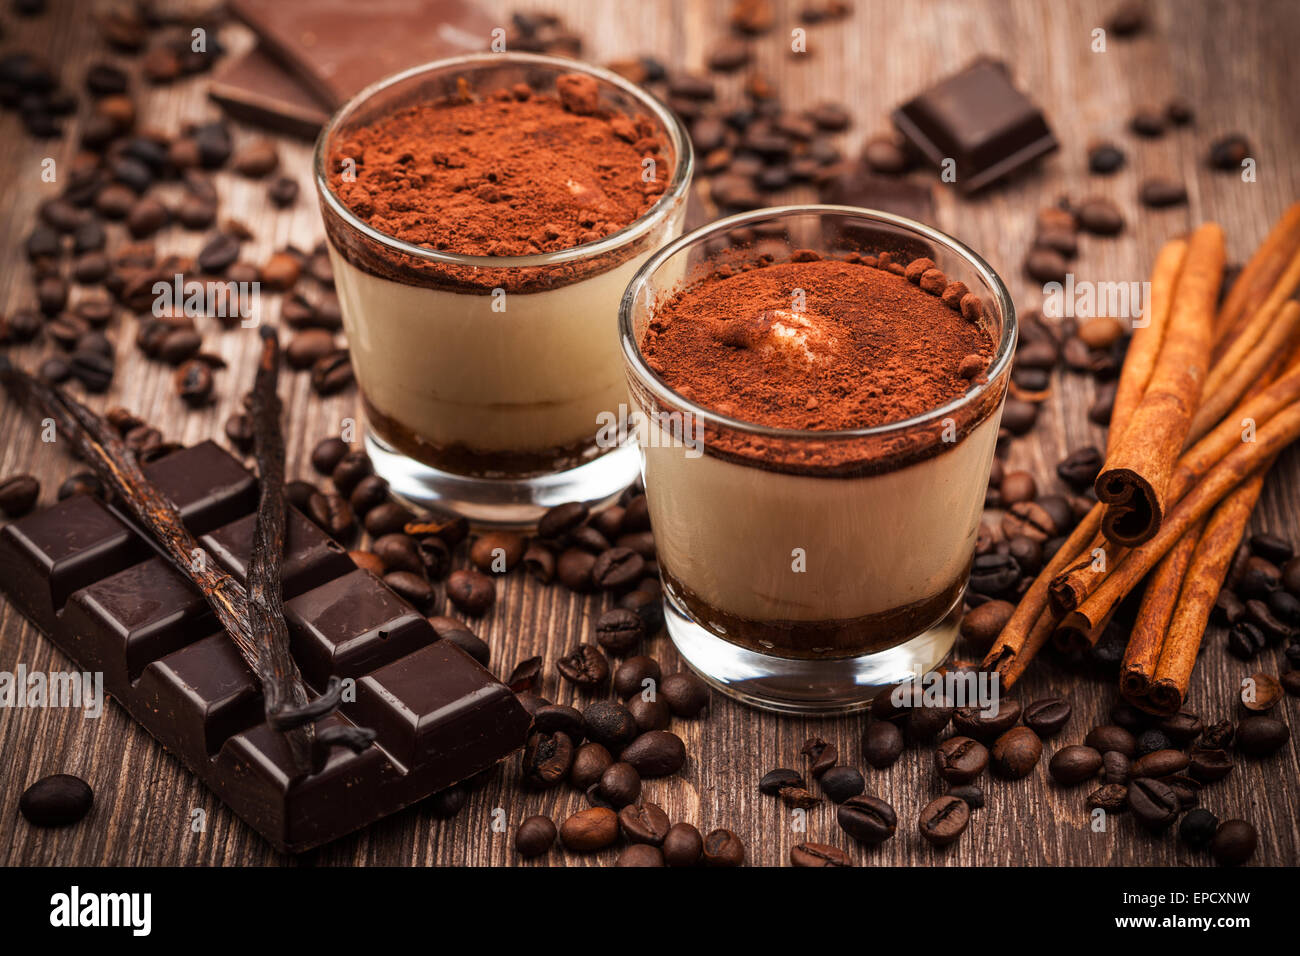 Delicious tiramisu dessert with ingredients - Stock Image